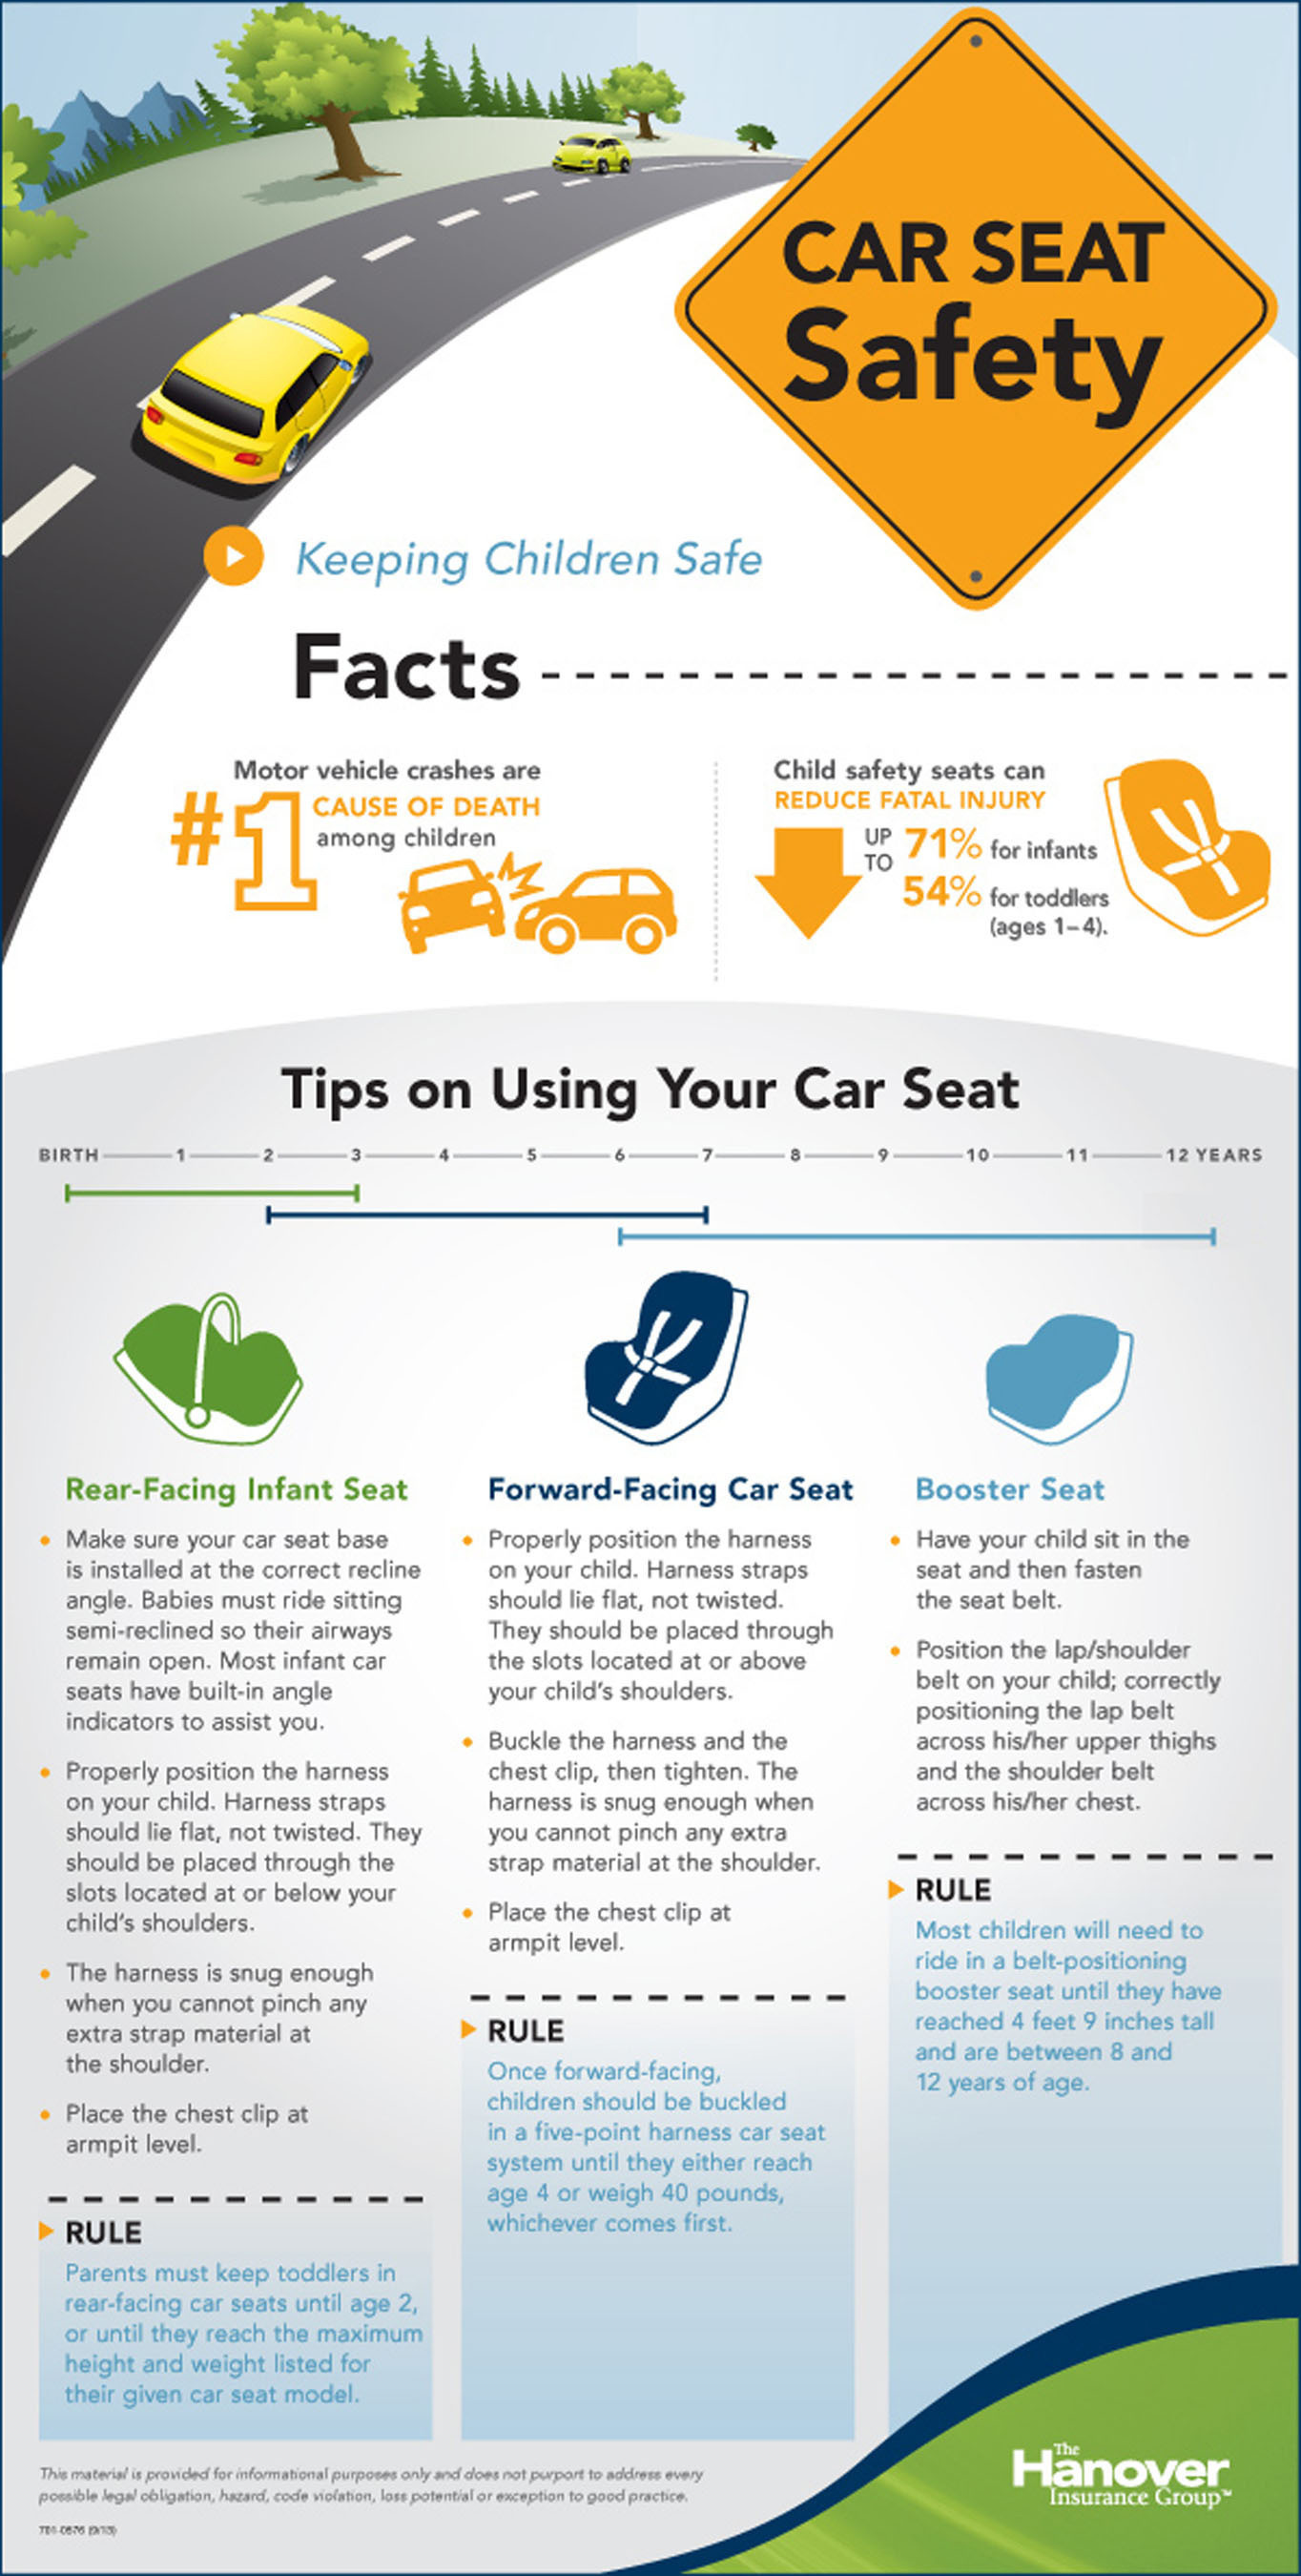 The Hanover Insurance Group offers car seat safety tips in recognition of Child Passenger Safety Week. (PRNewsFoto/The Hanover Insurance Group, Inc.) (PRNewsFoto/THE HANOVER INSURANCE GROUP, INC)